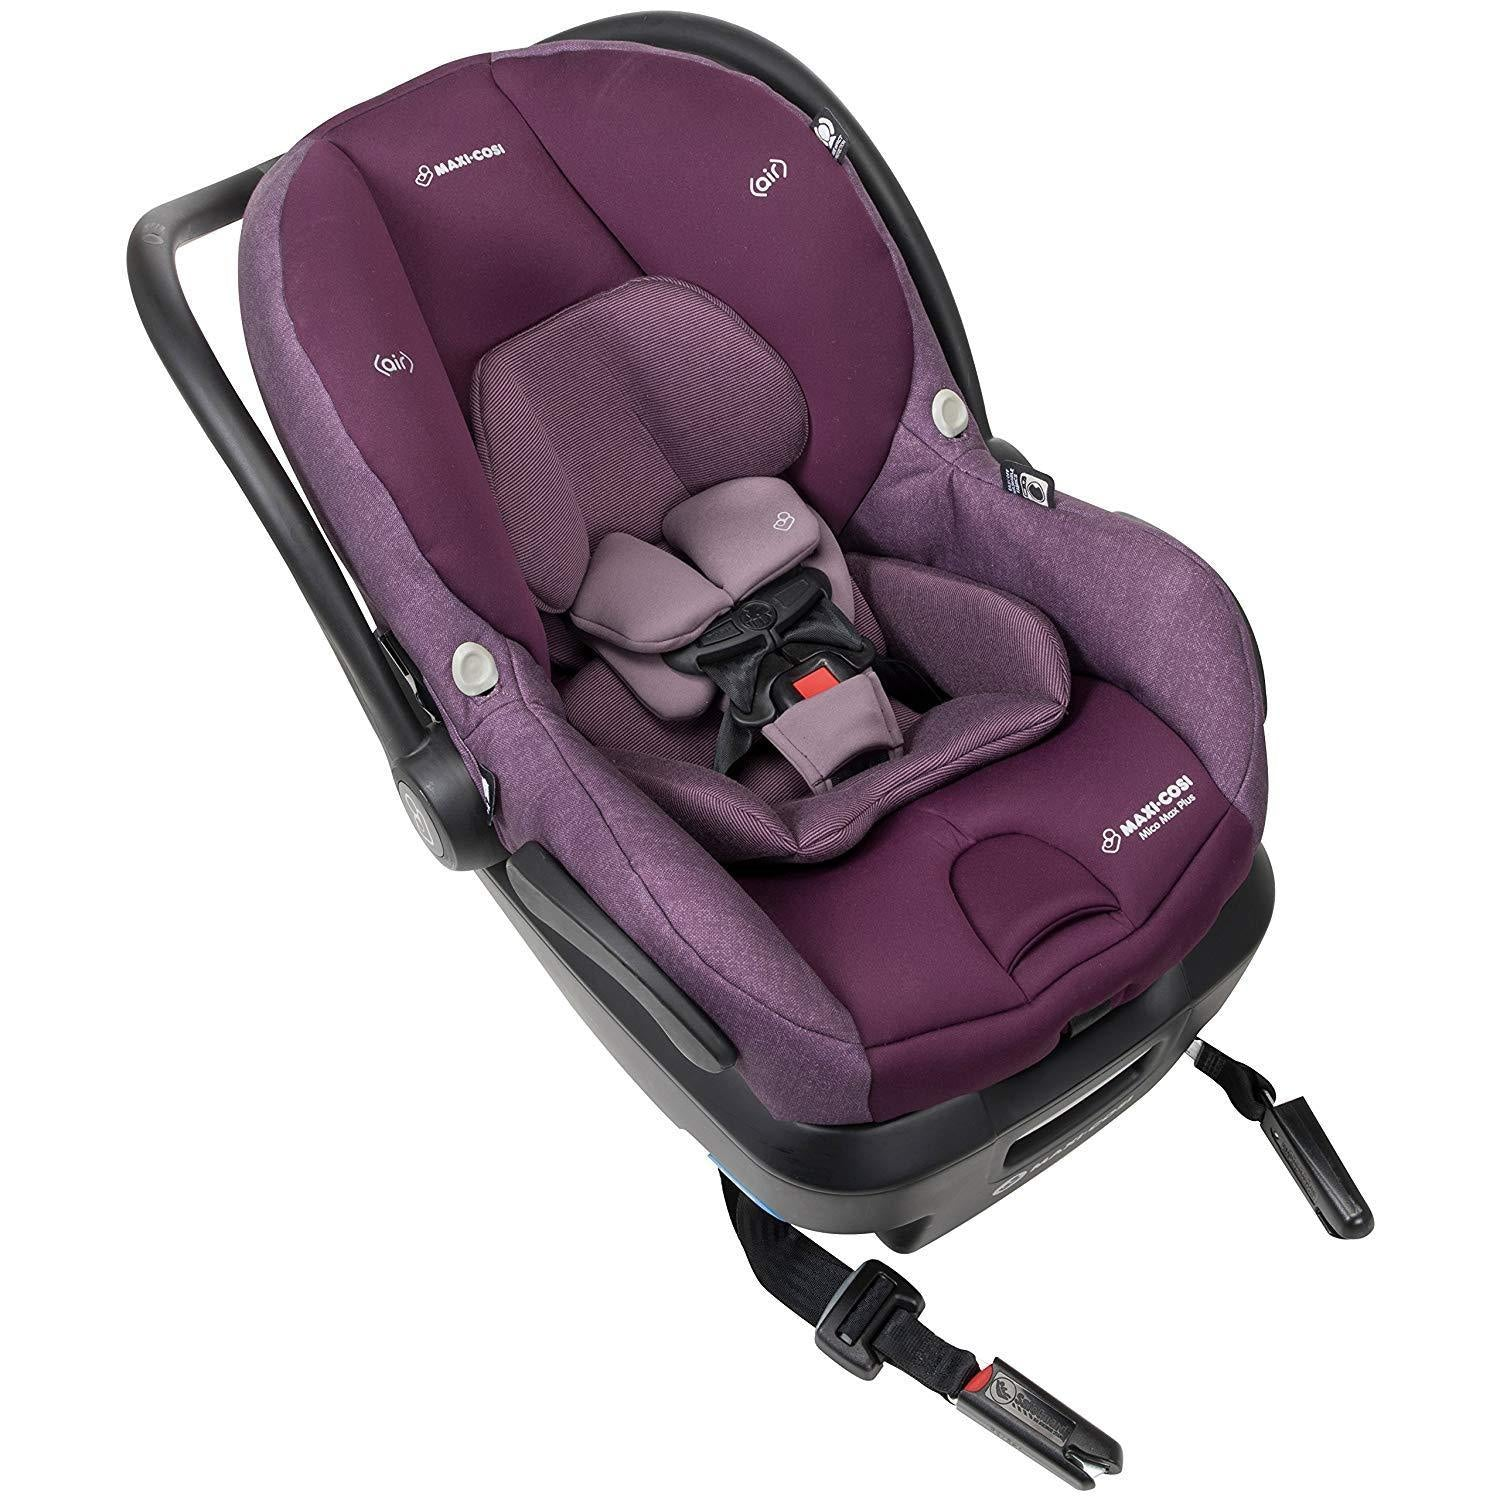 Maxi-Cosi Mico MAX Plus Infant Car Seat - Nomad Purple